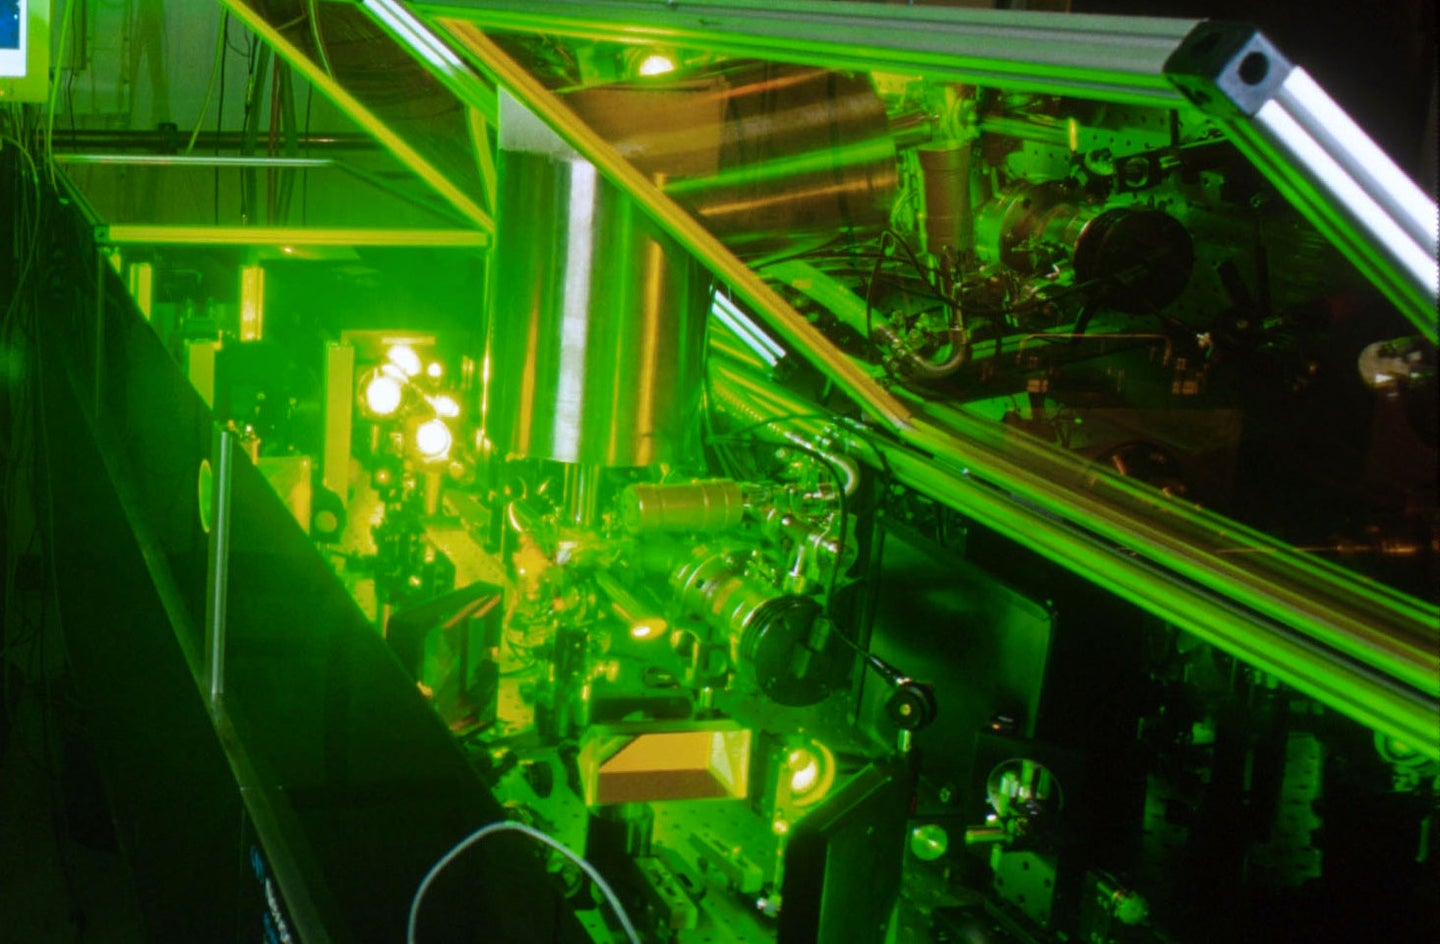 Super-Intense Laser Stretches Farther Than Ever